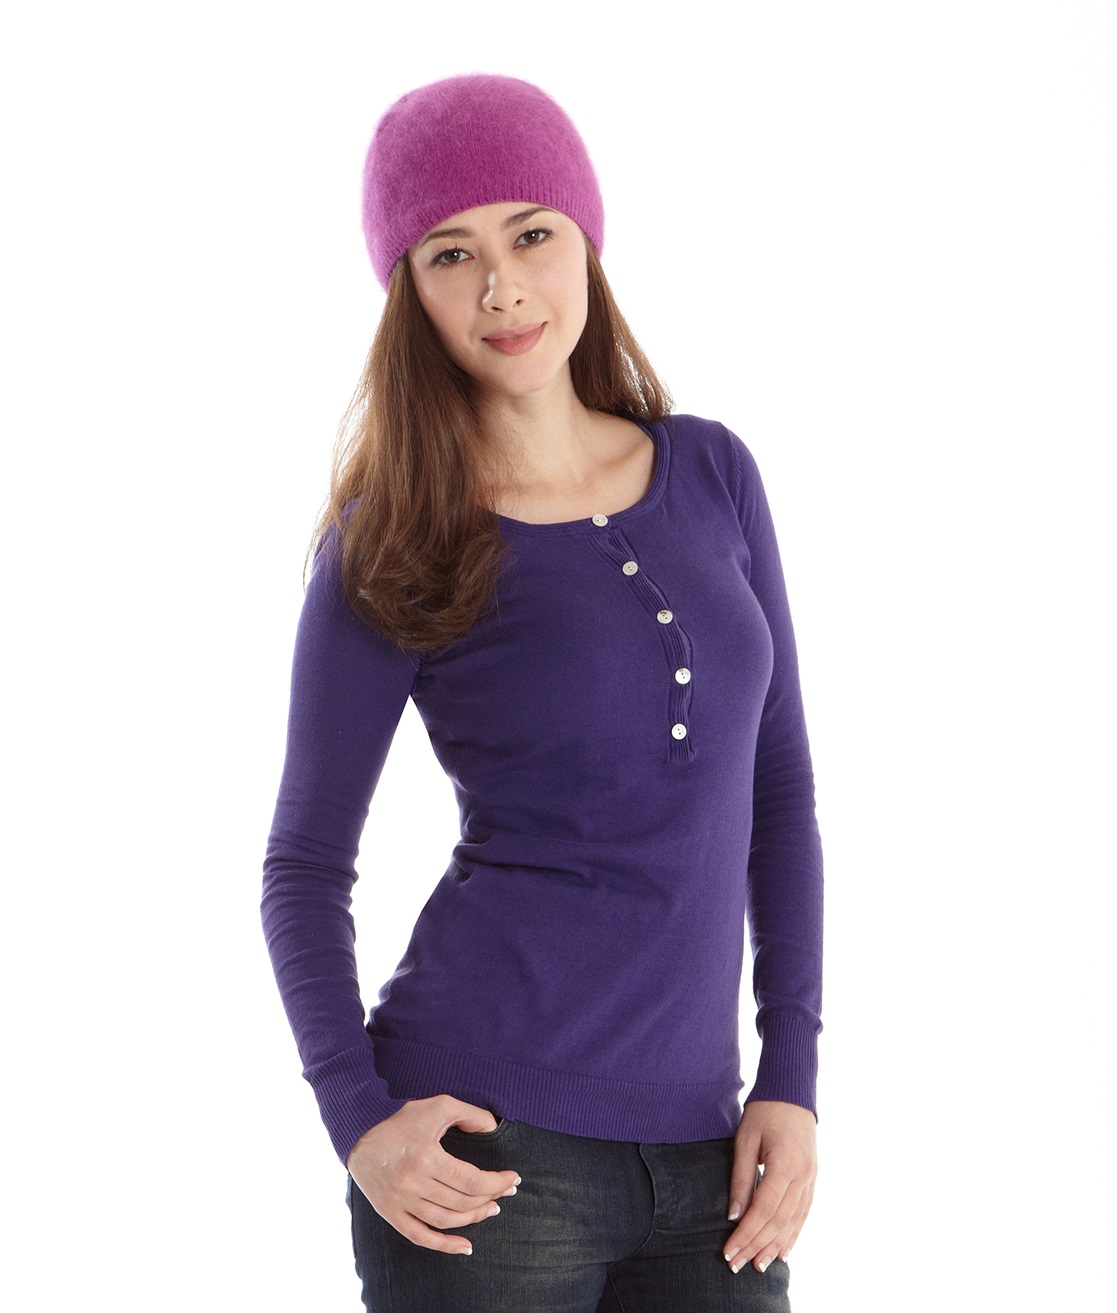 mothers-en-vogue-basic-button-down-nursing-sweater-wisteria.jpg